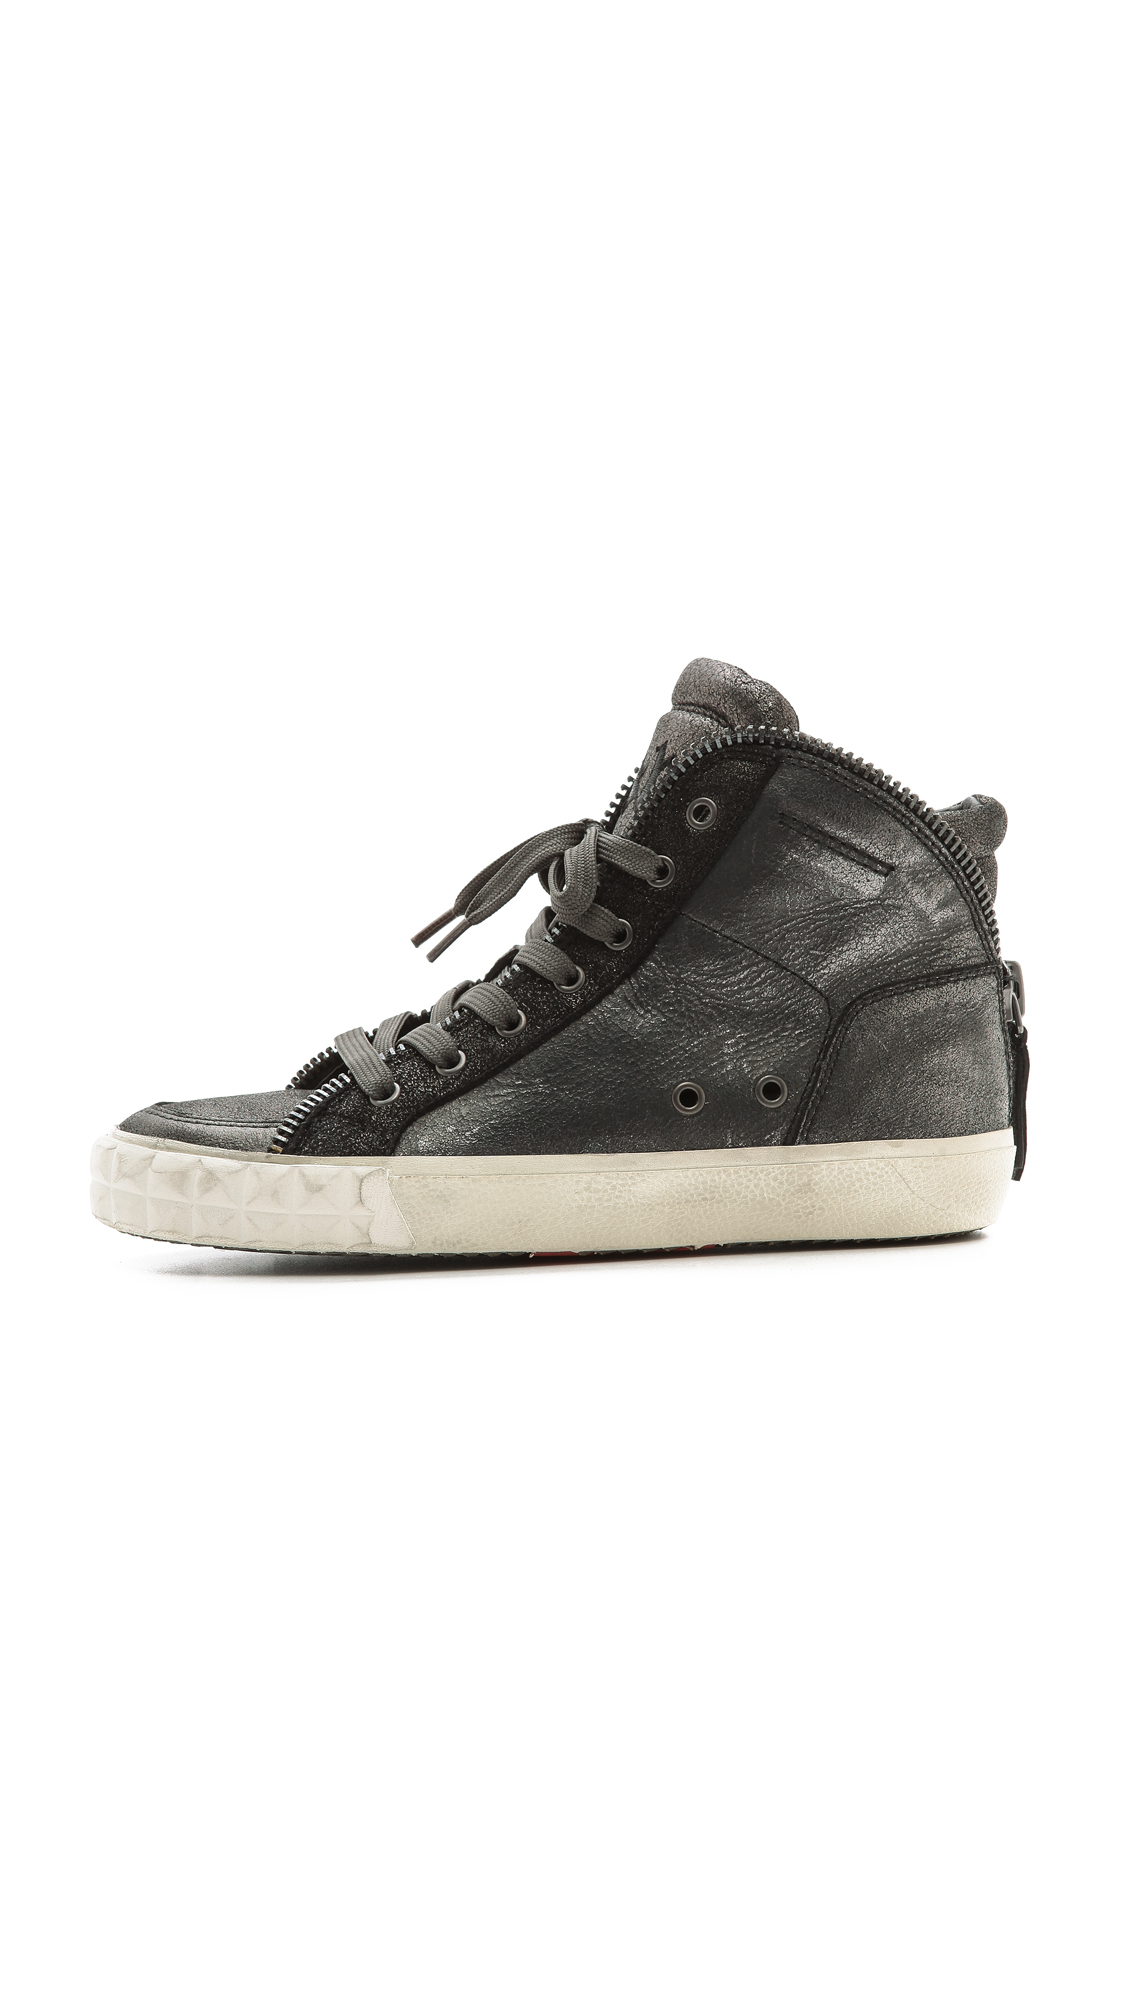 3e47ae6f6ef37 Ash Shake High Top Zipper Sneakers